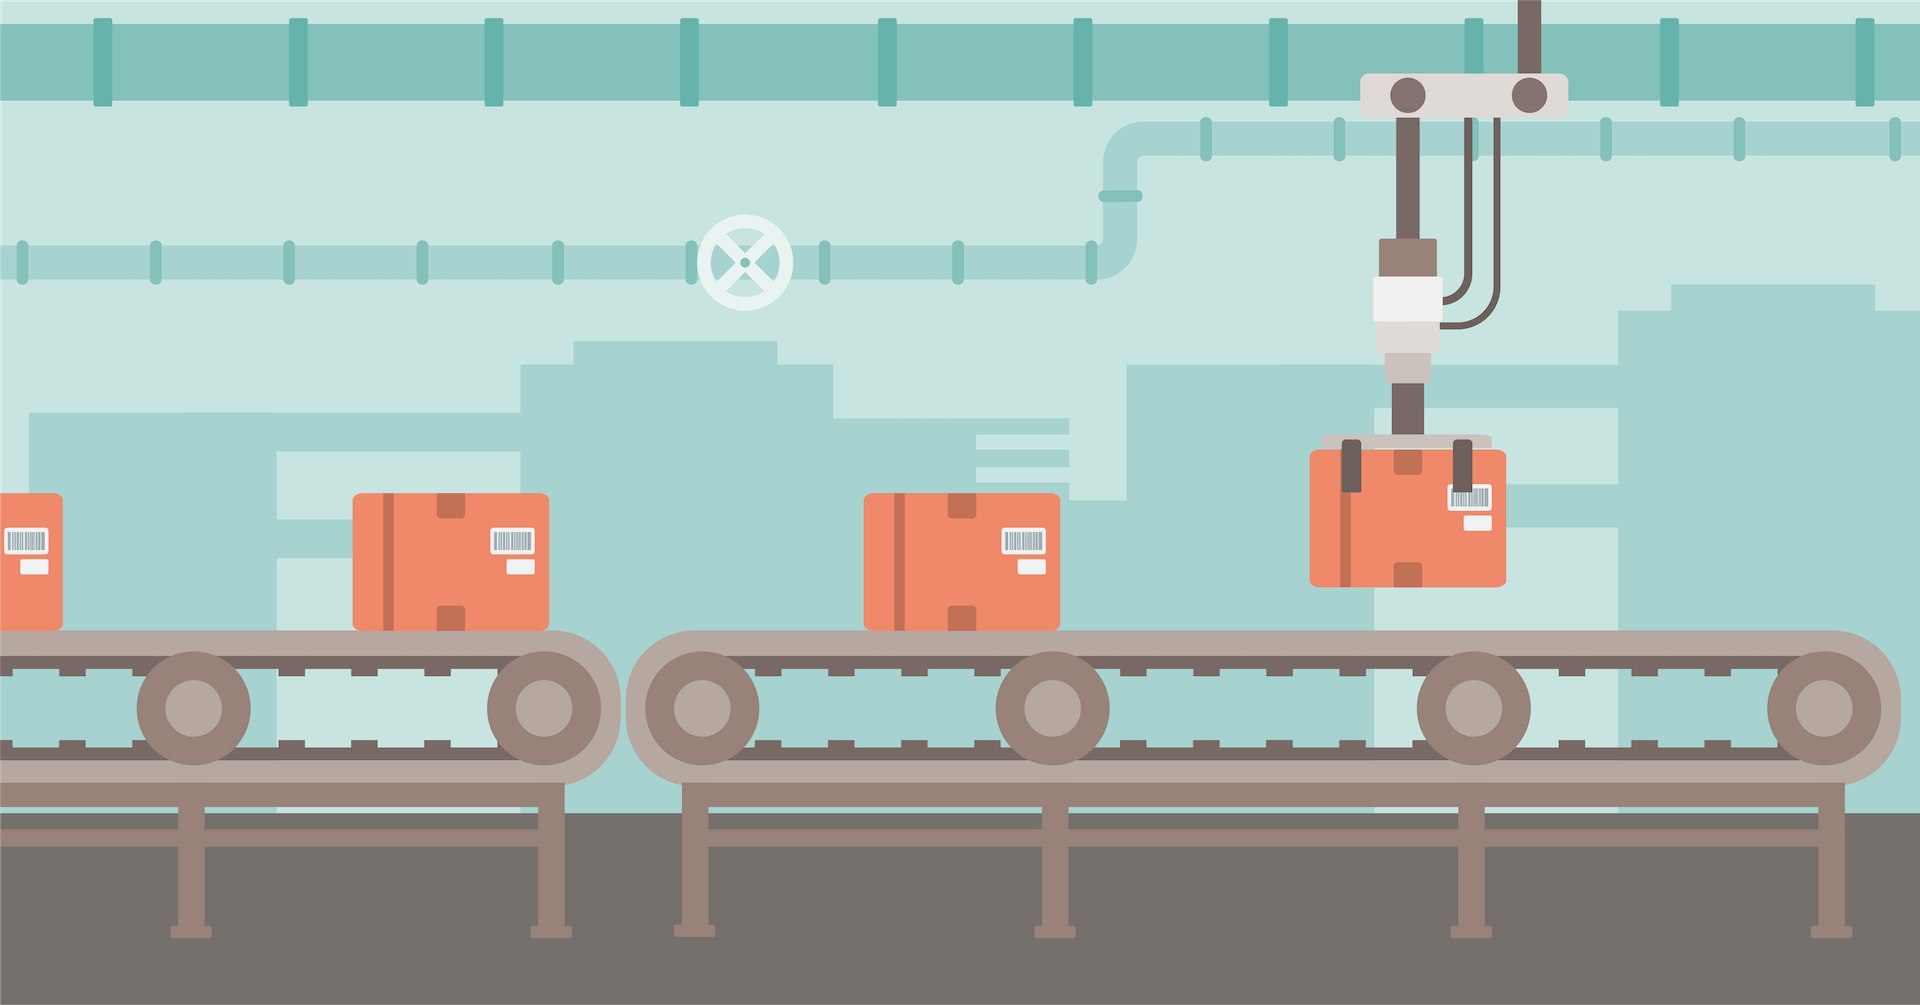 Illustration of boxes moving along a conveyor belt on a factory floor